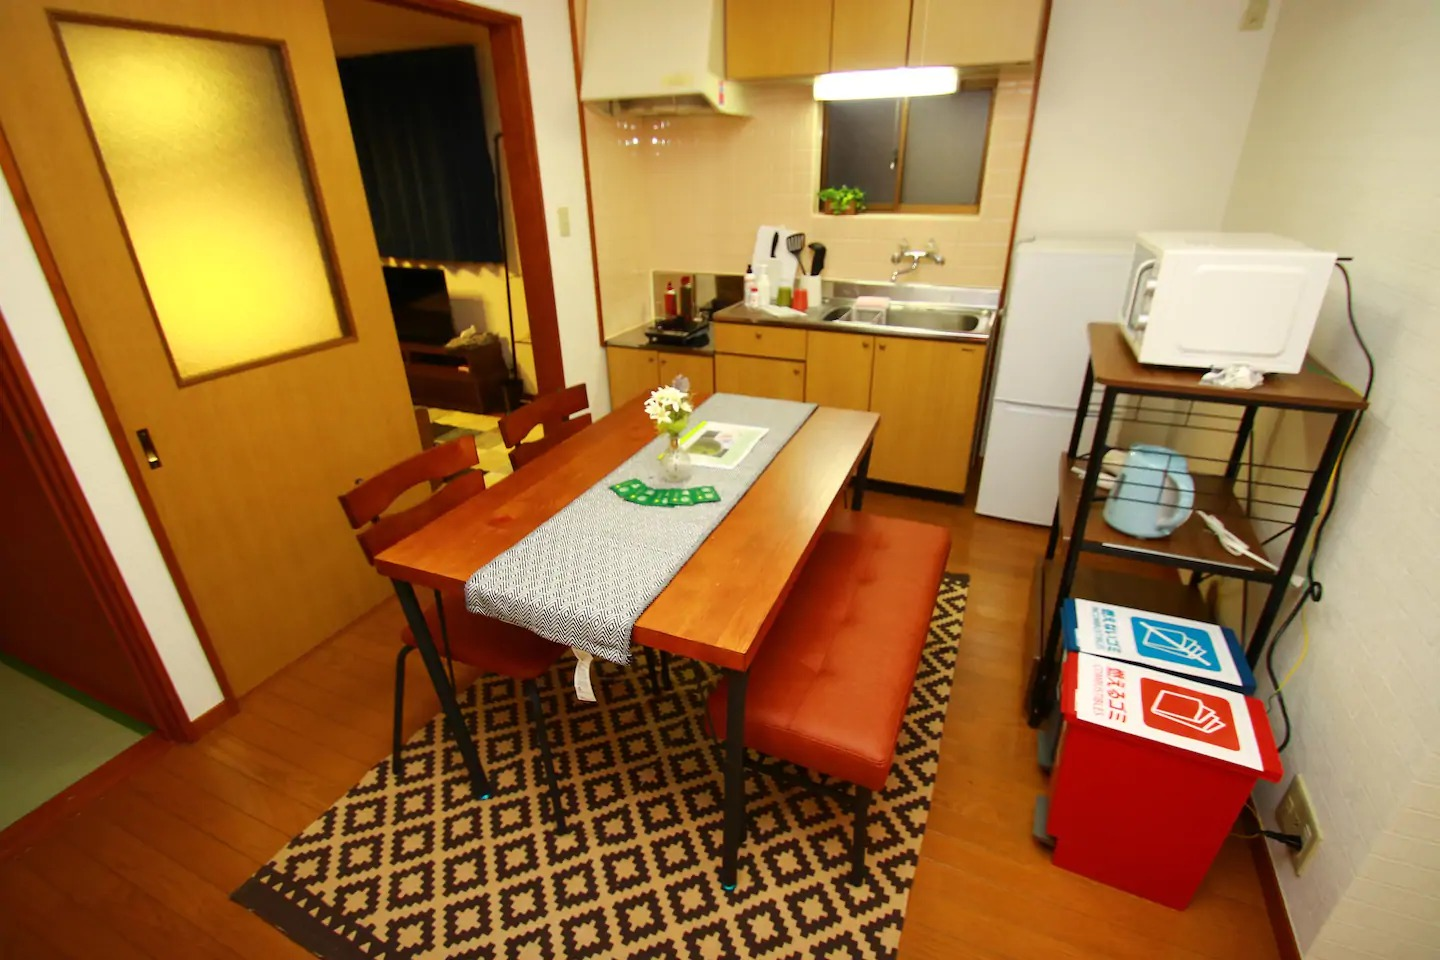 Kitchen with dining table ダイニングテーブル キッチン